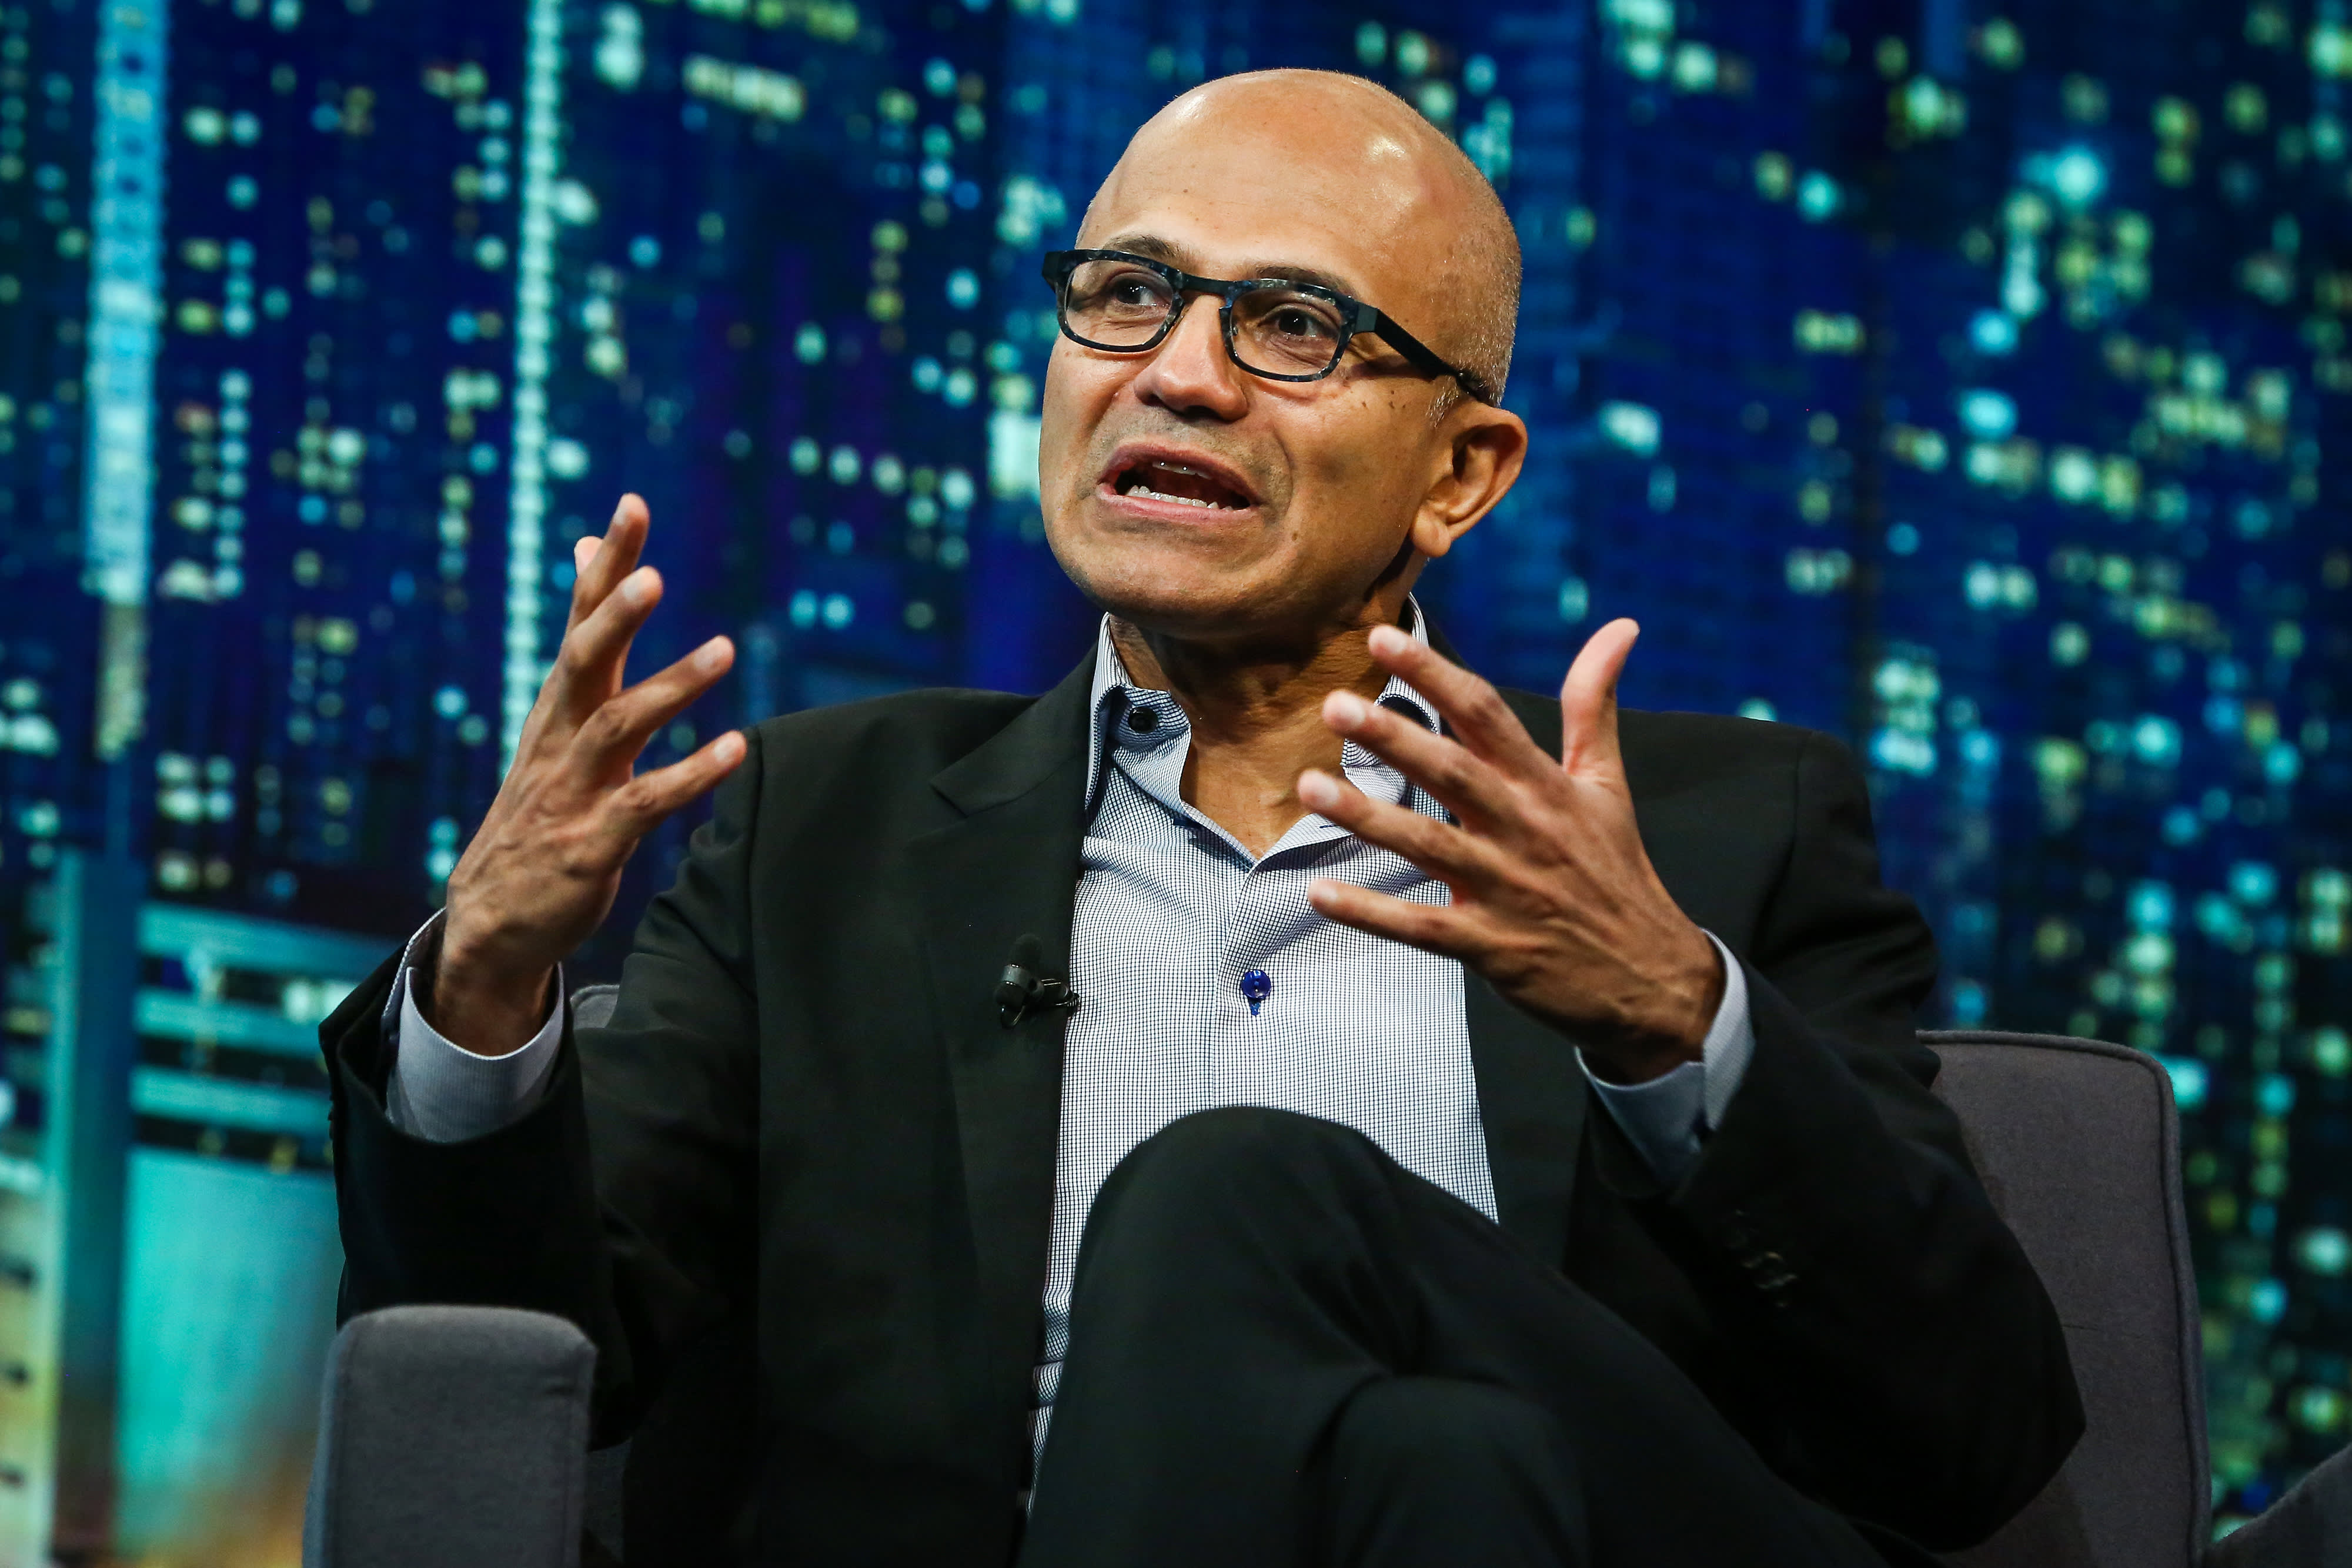 Microsoft upgraded by Jefferies: 'We see a large diversified business with excellent visibility'